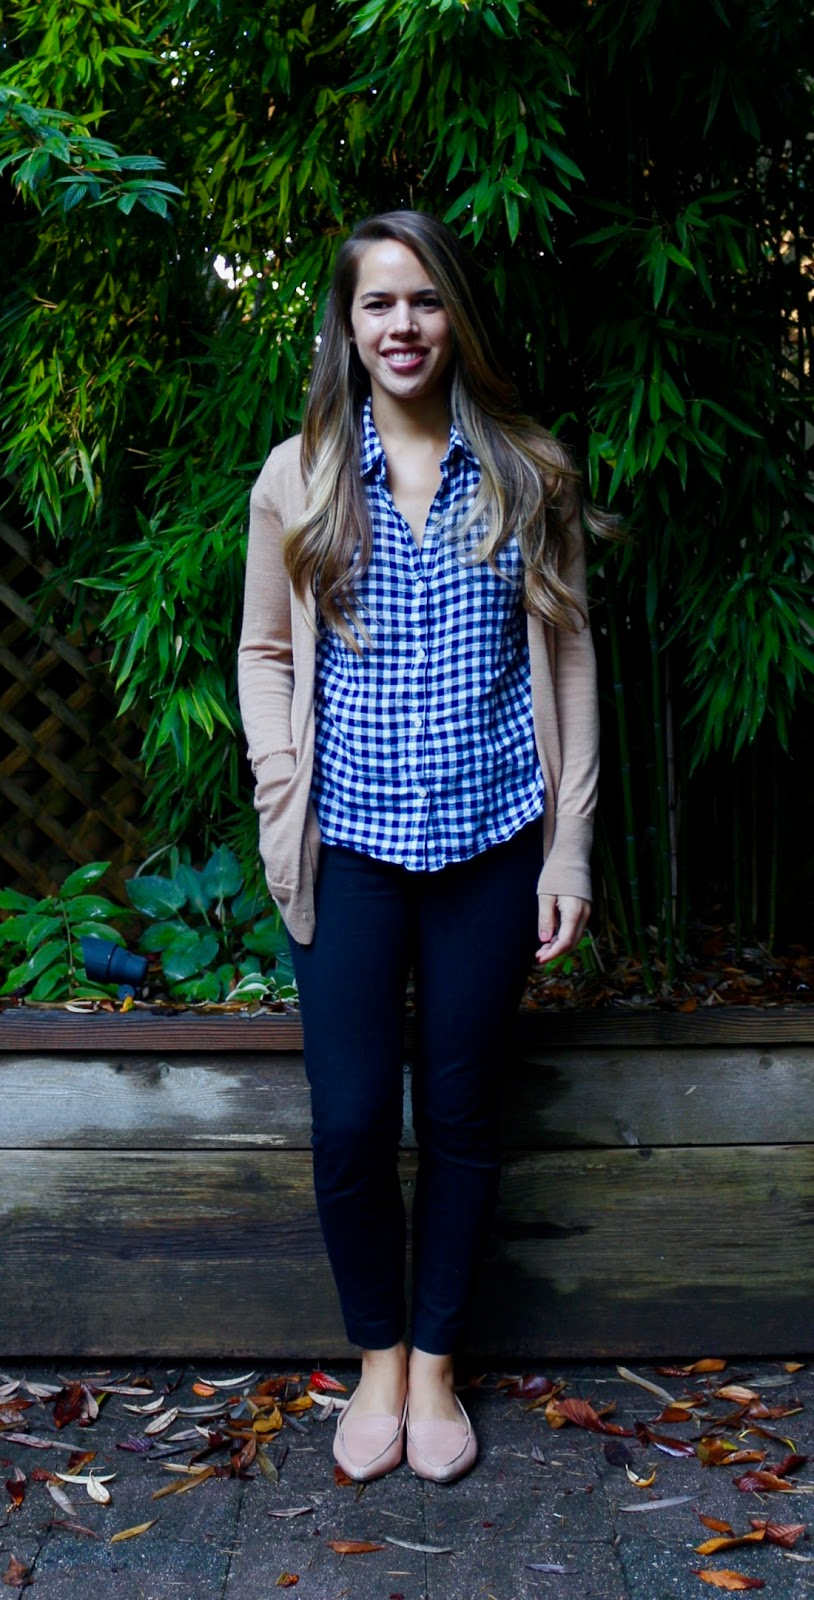 Jules in Flats - Gingham Button Down with Camel Cardigan (Business Casual Fall Workwear on a Budget)